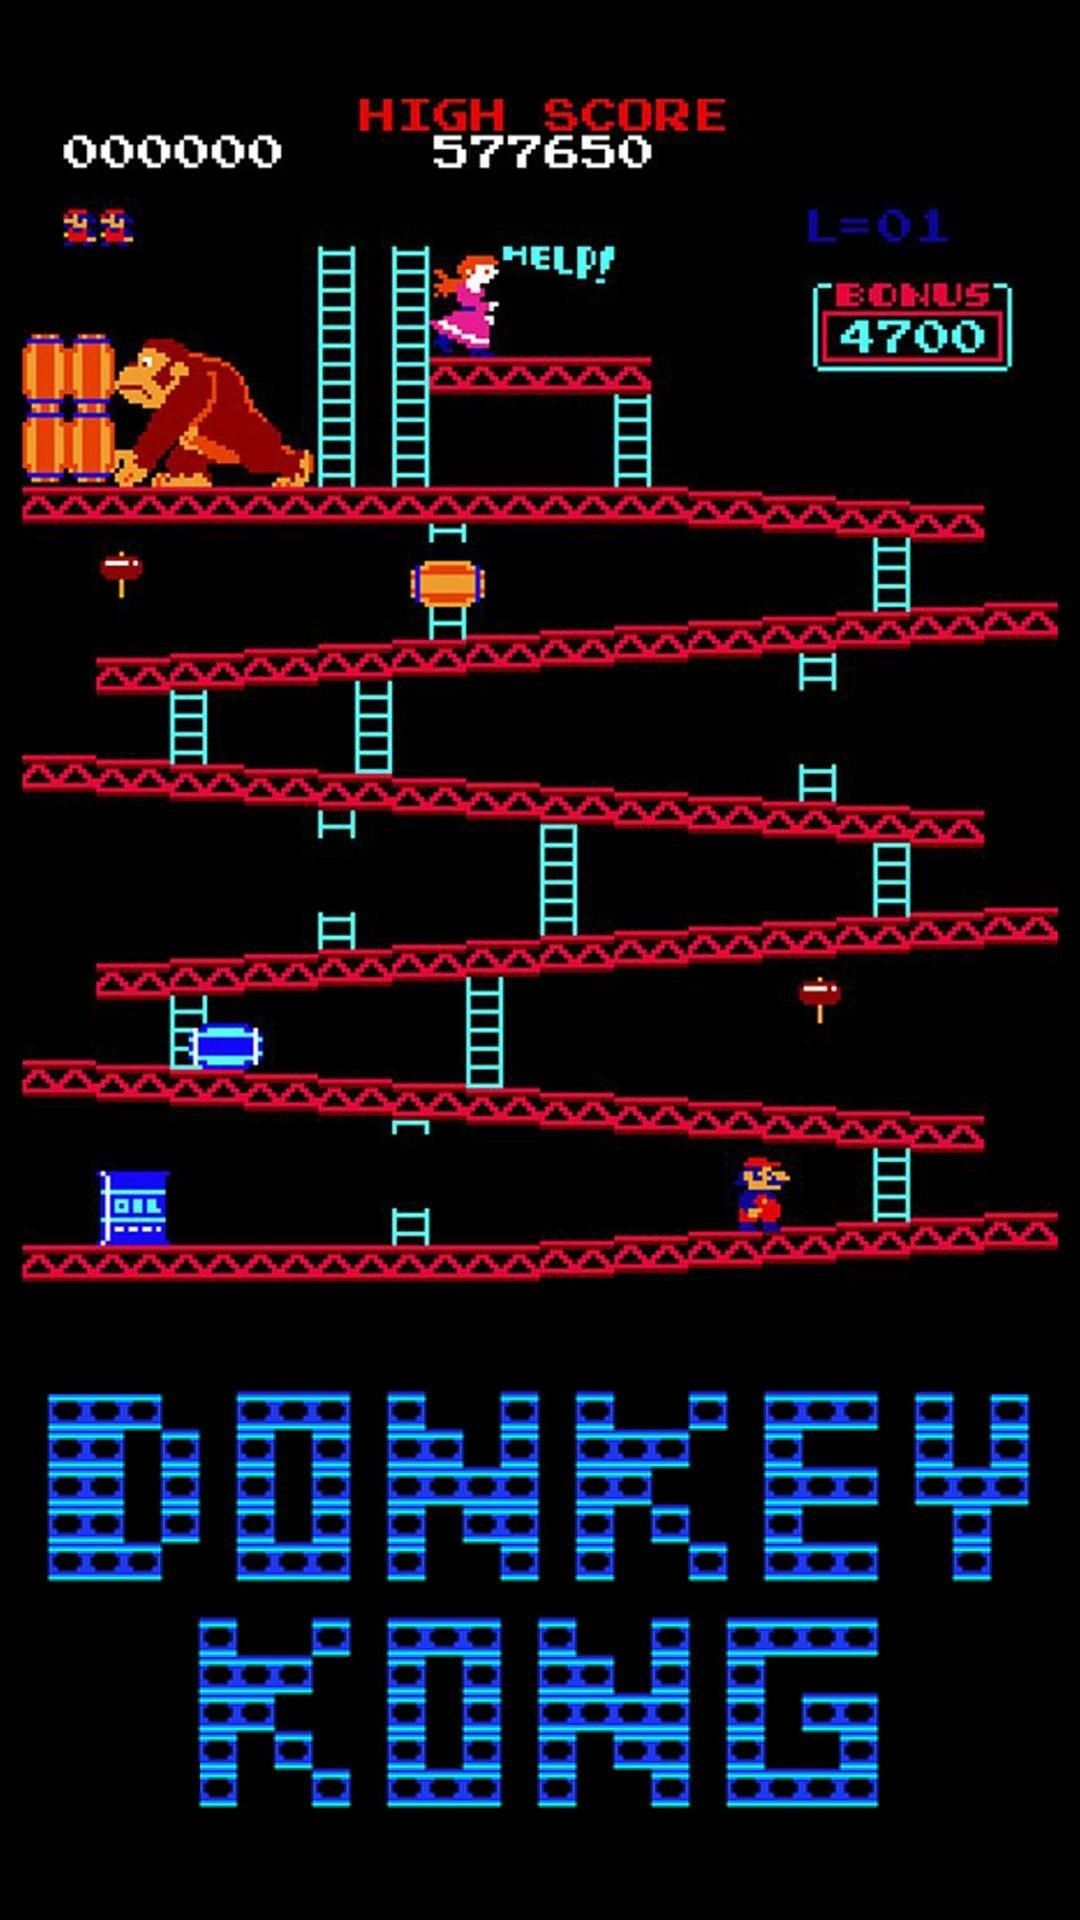 Visit Retro Video Game Wallpaper Android Download On High Definition Wallpaper At Rainbowwallpaper Info Pin In 2020 Retro Video Games Retro Videos Classic Video Games